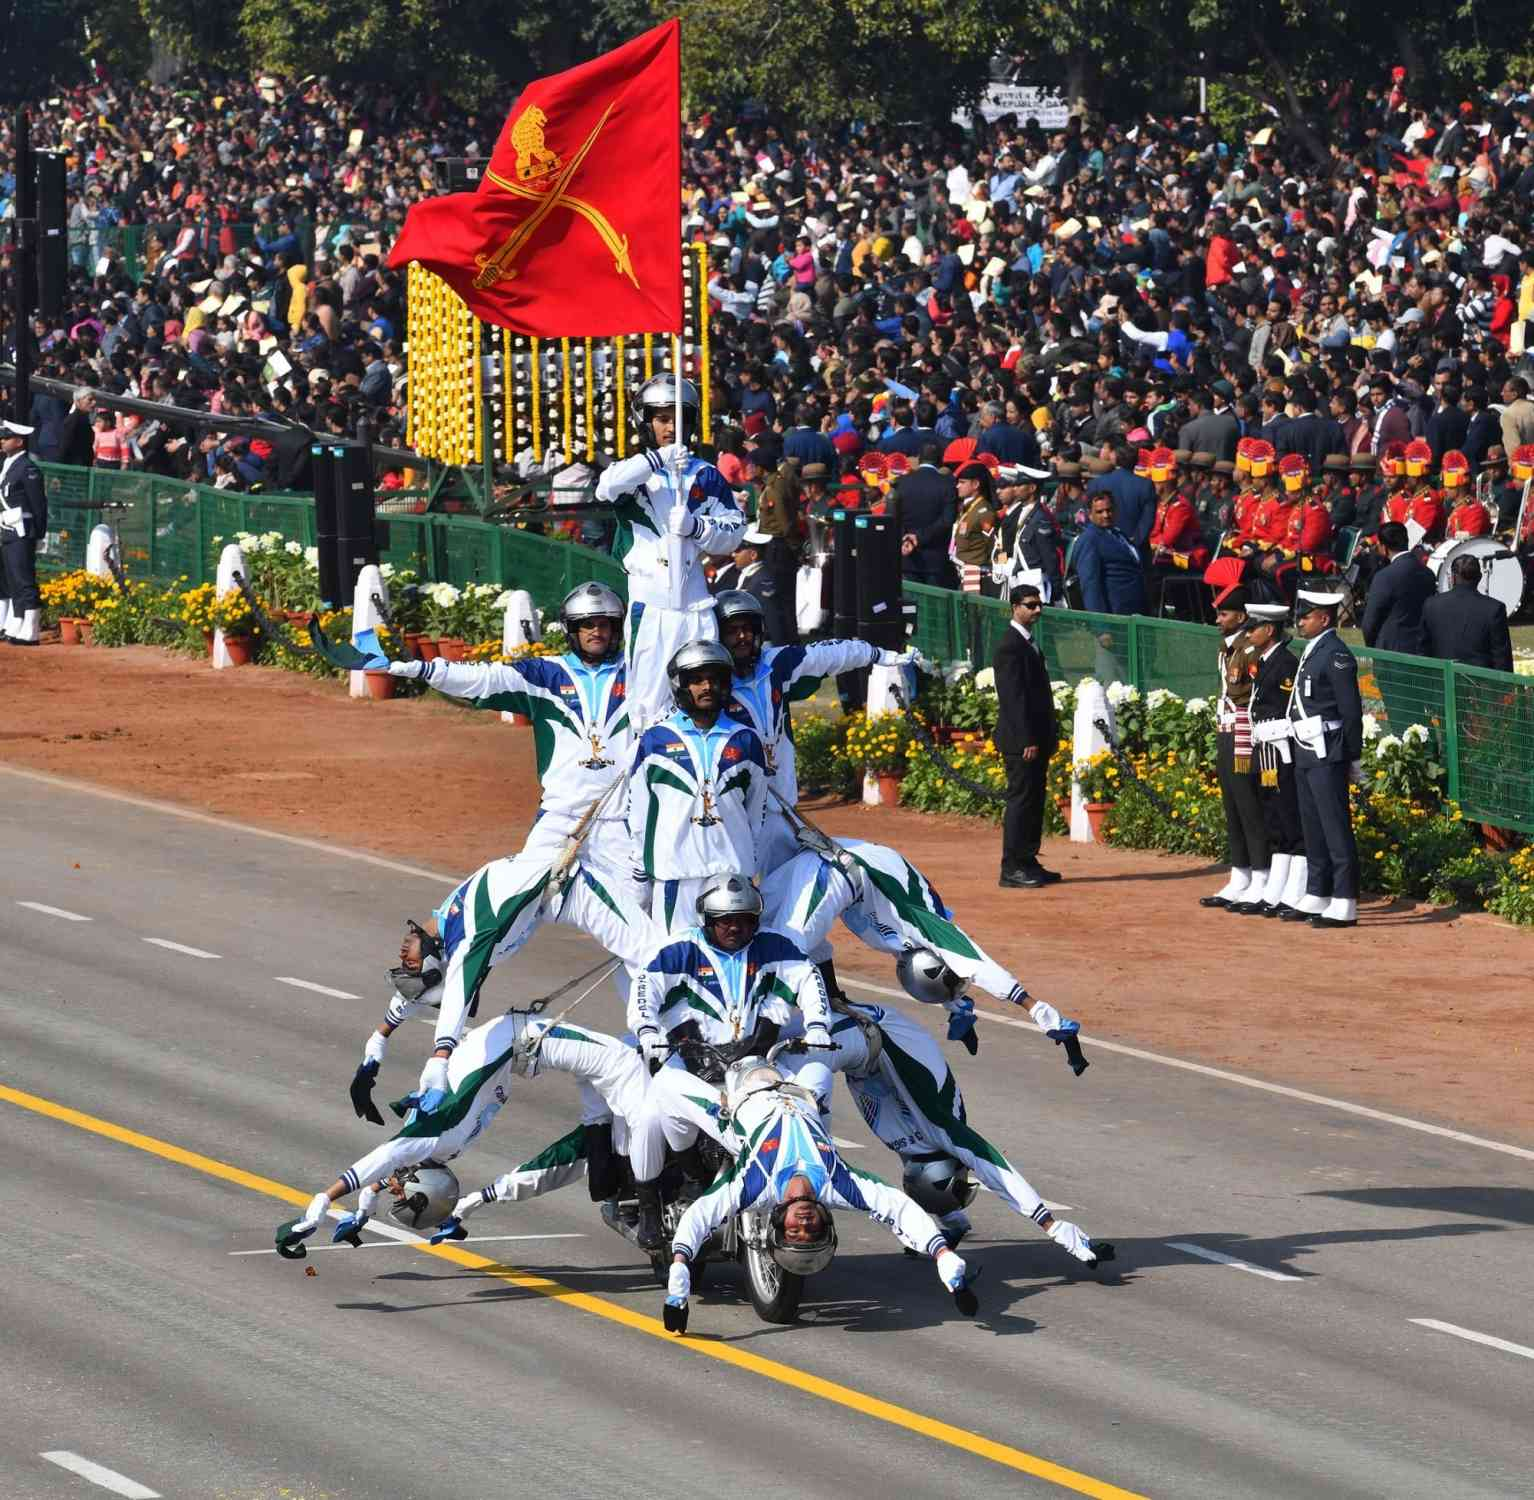 The Indian Army's 'Daredevils' motorcycle team participates in the Republic Day parade in New Delhi (Photo credit: IANS)